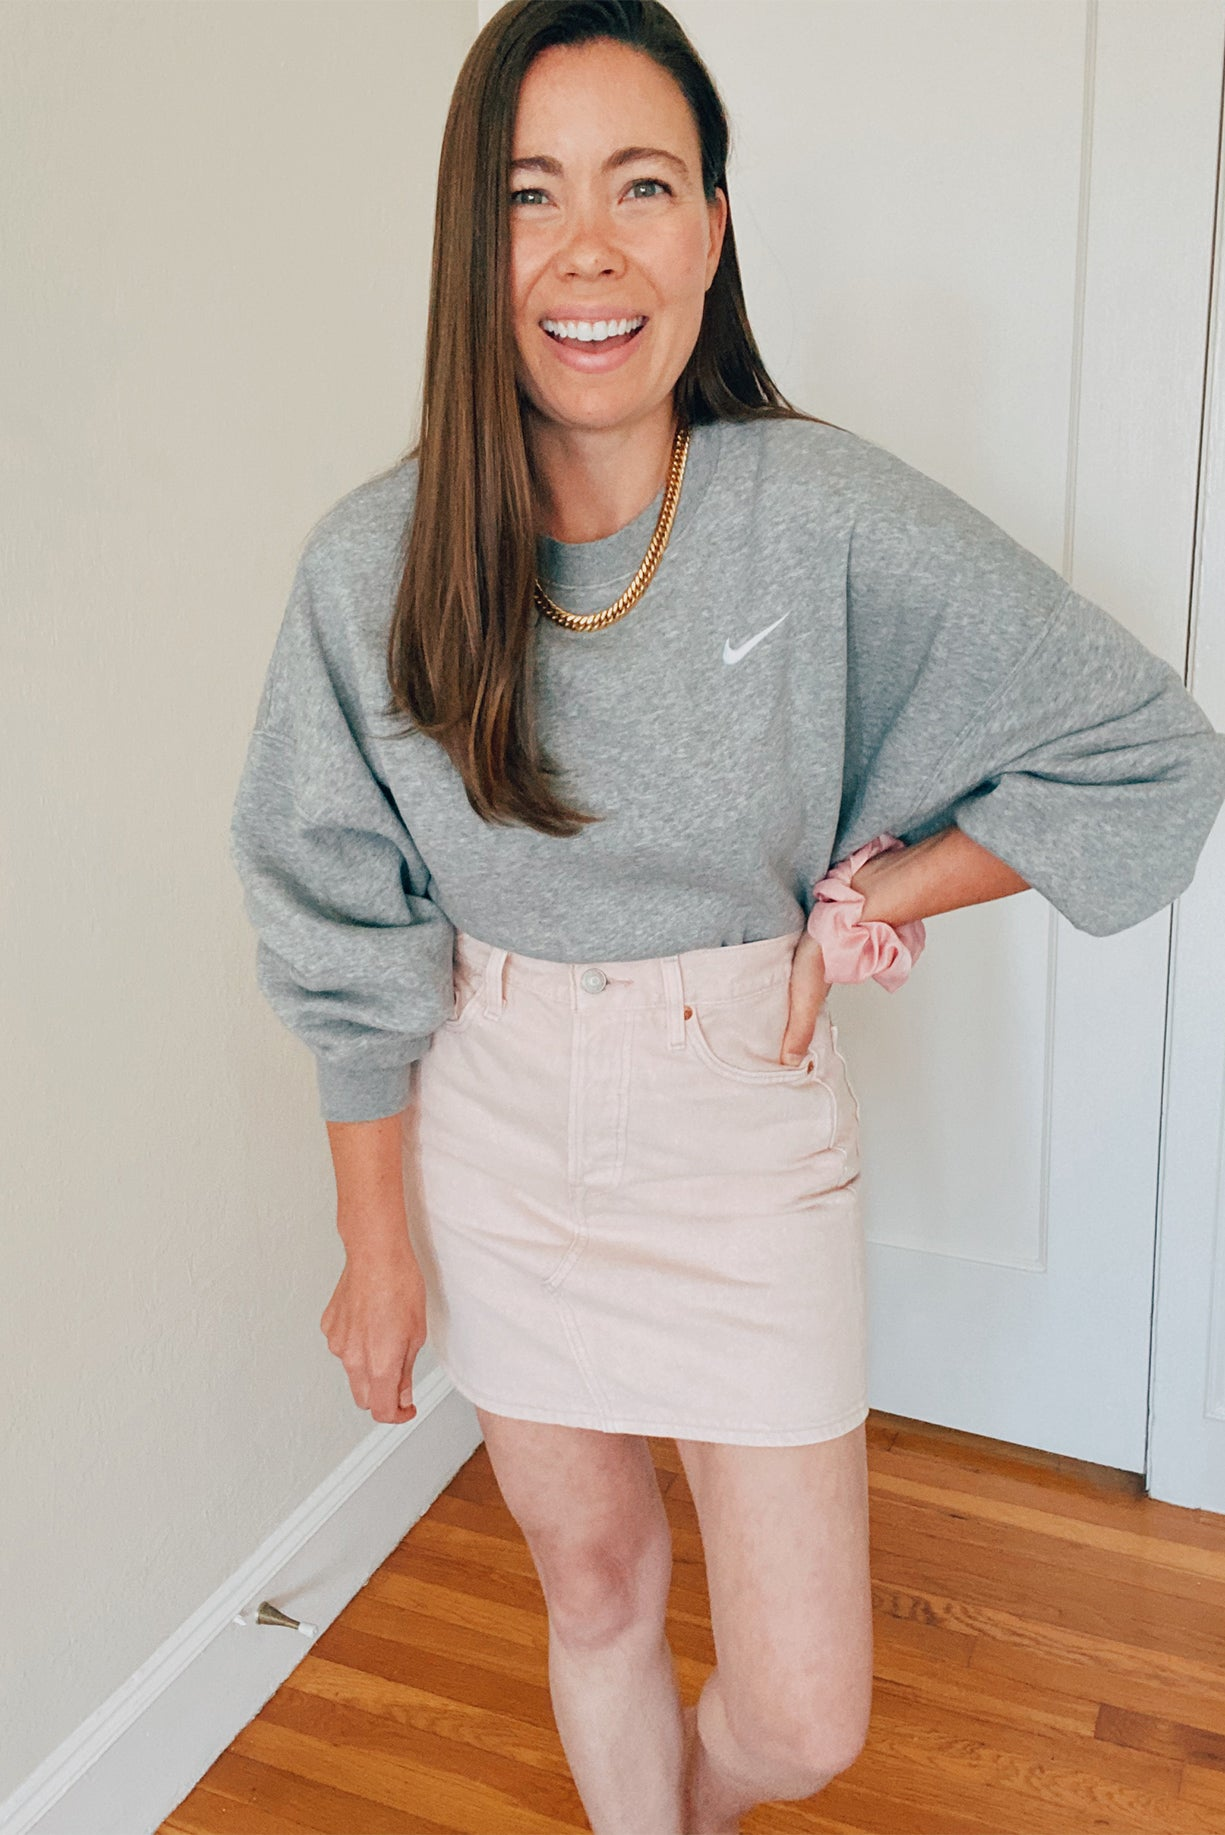 Nike Sweatshirt and Pink Denim Levi's Skirt